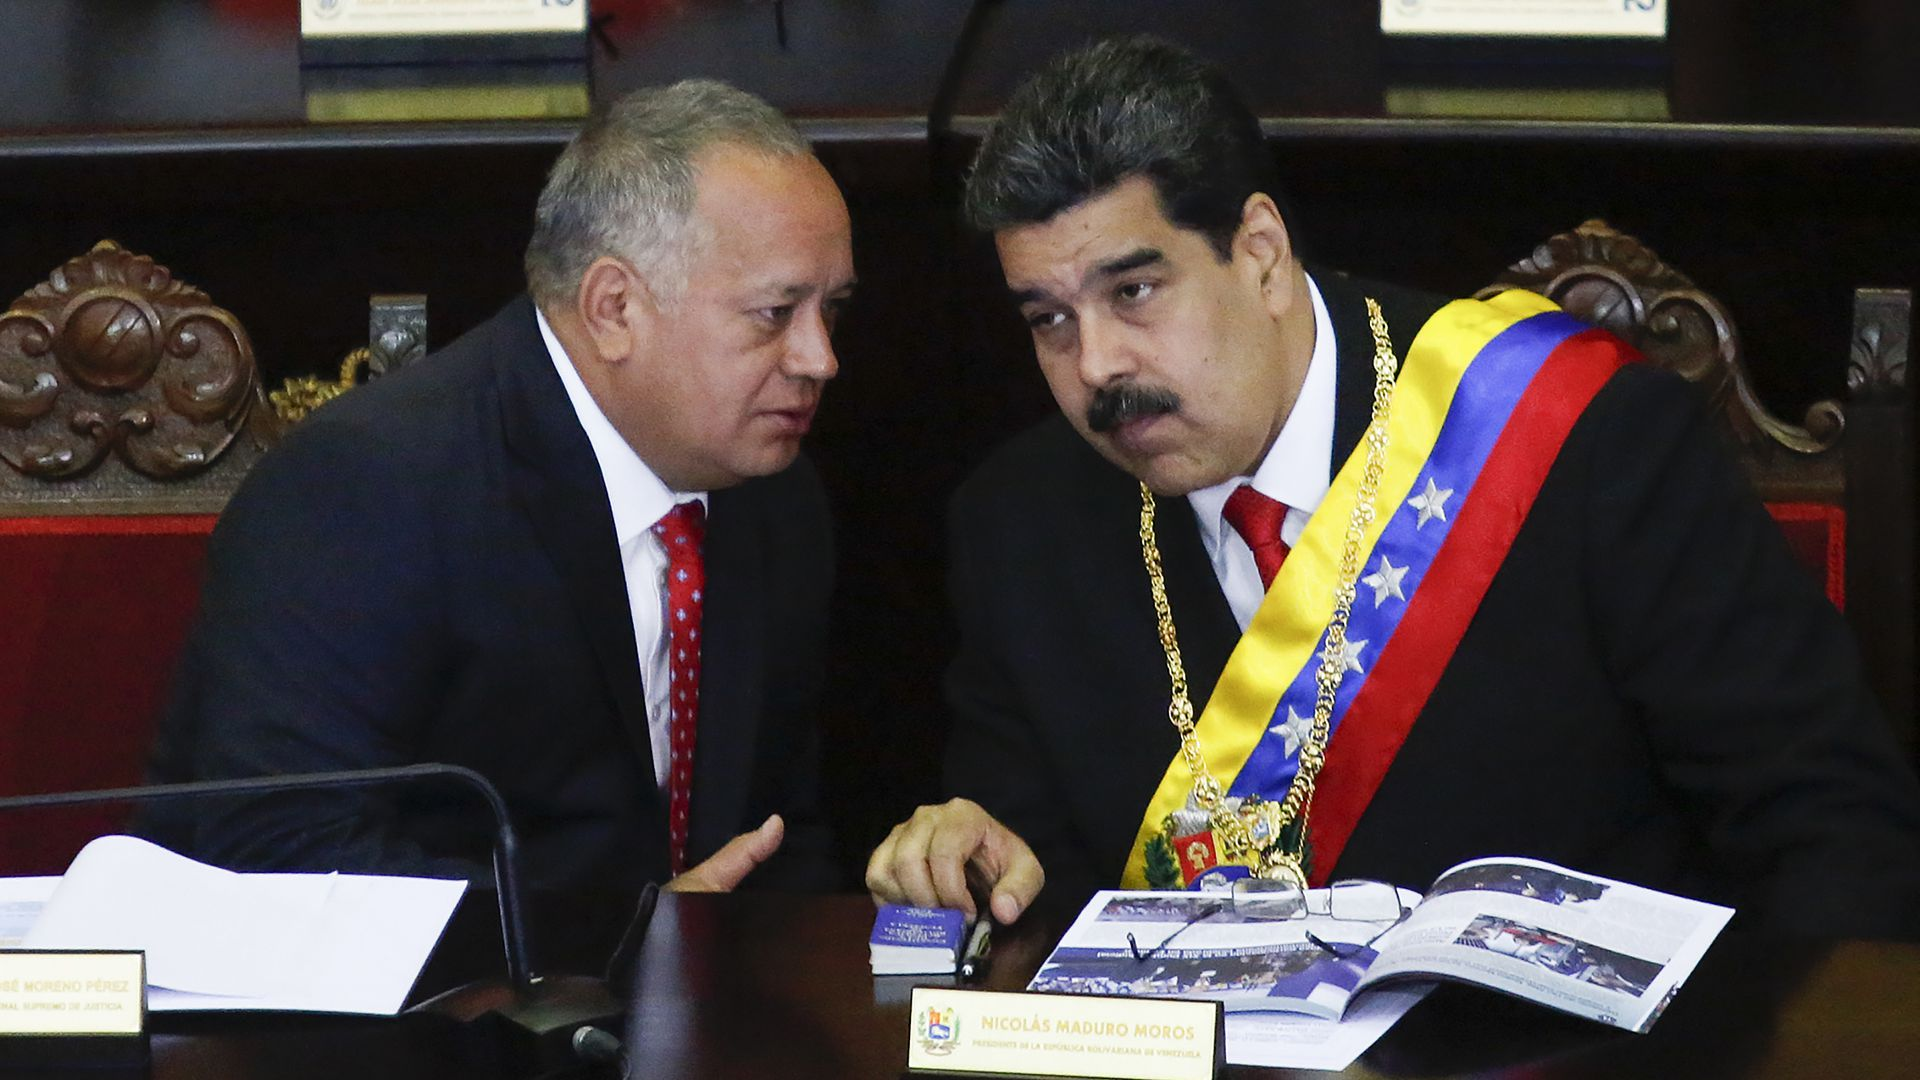 President of Venezuela Nicolás Maduro (R) talks to President of the Constituent Assembly Diosdado Cabello (L)